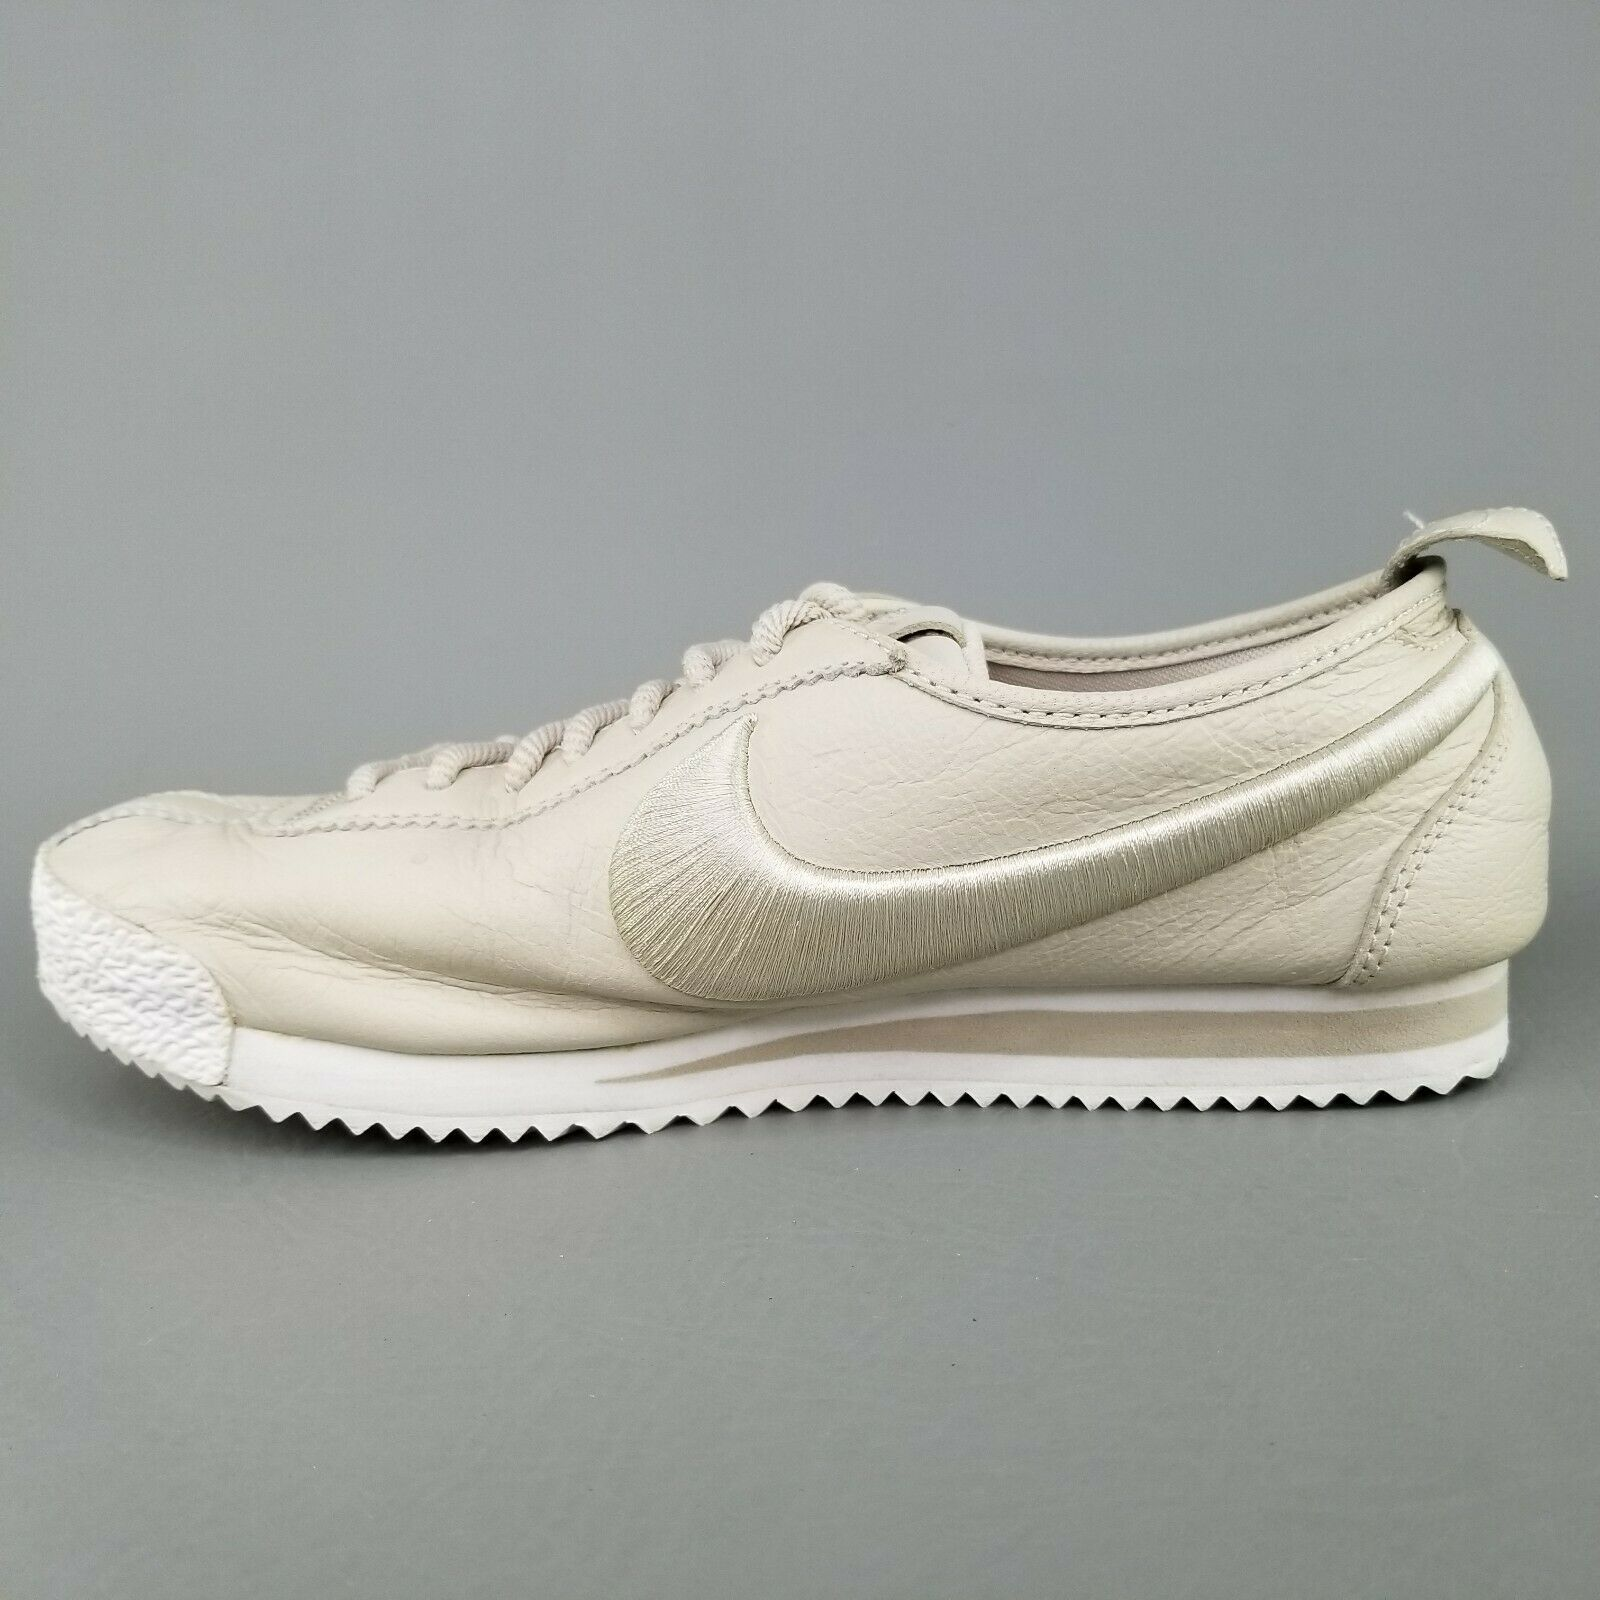 Nike Cortez 72 SI Leather Shoes Womens Size 8 Athletic Sneakers Tan White